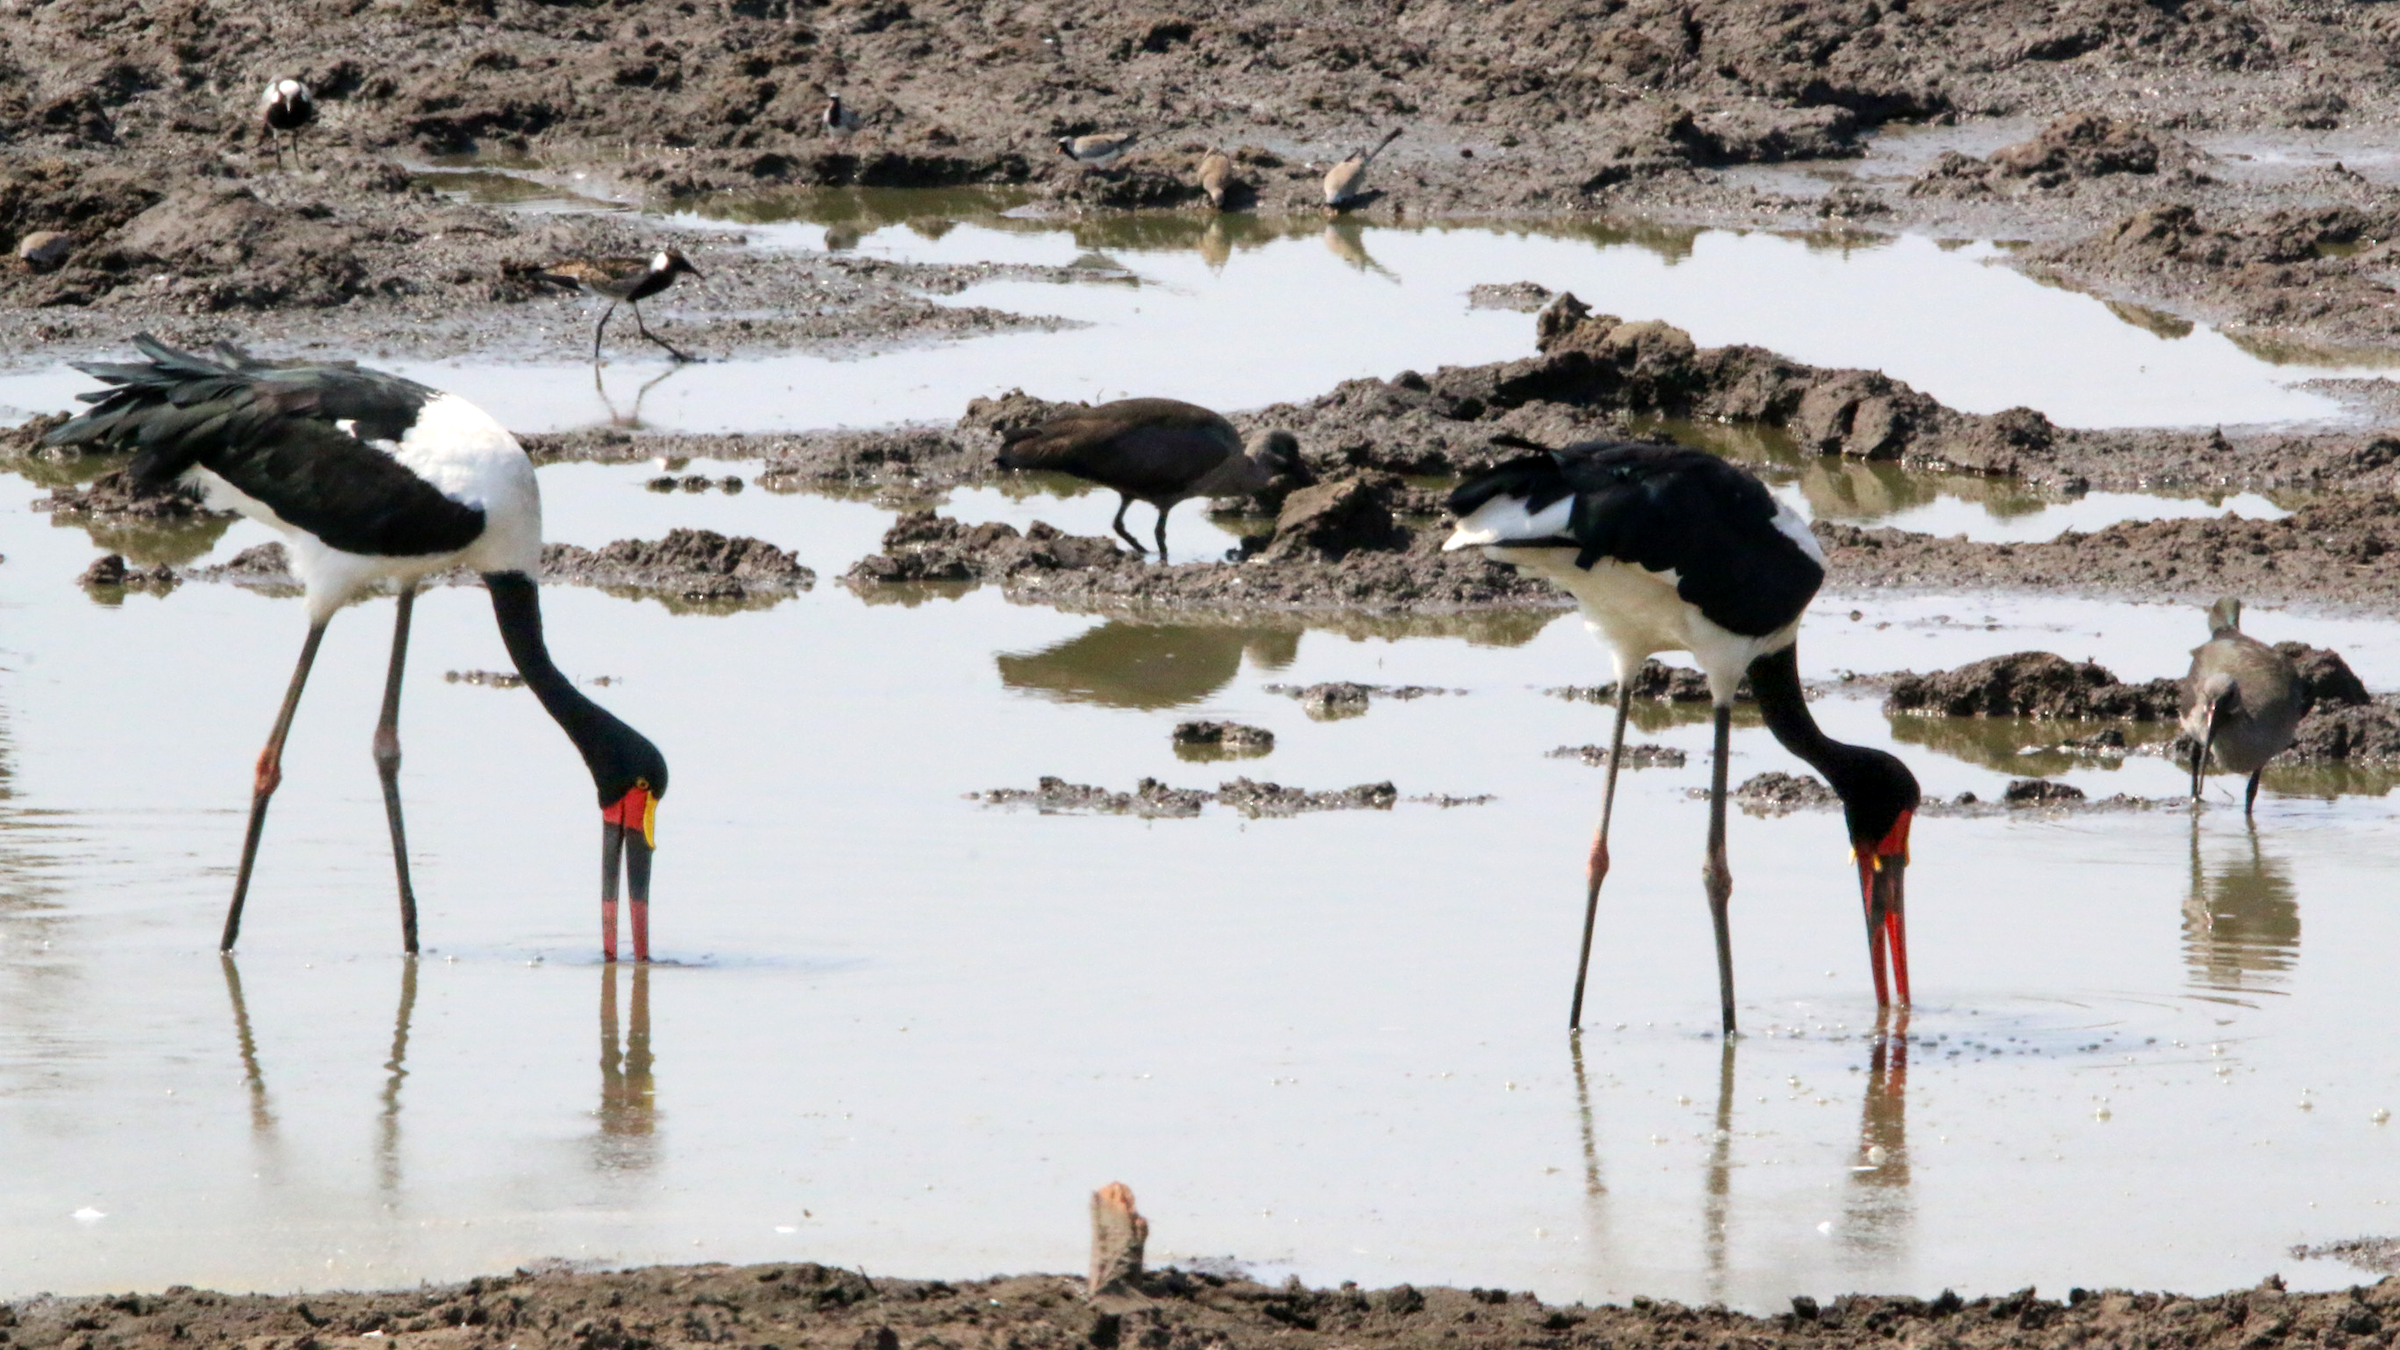 Saddle-billed storks in Africa forage with their beaks partly under water. Perhaps, Spinosaurus hunted the same way.